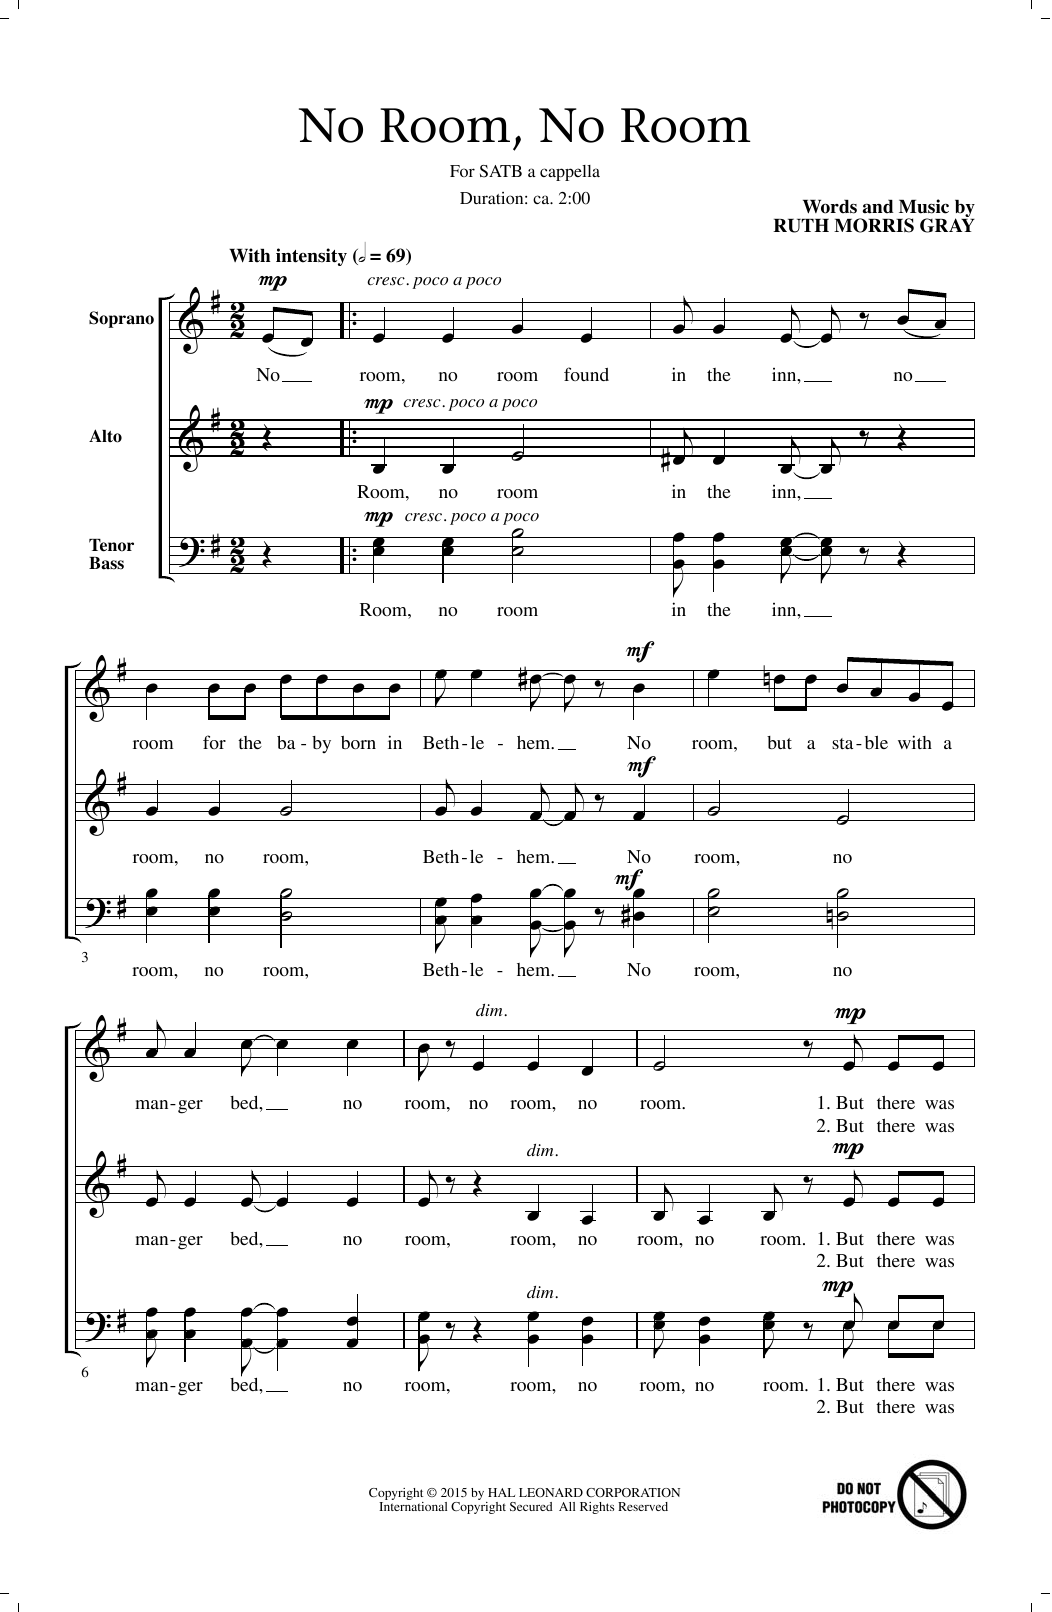 Ruth Morris Gray No Room, No Room sheet music notes and chords. Download Printable PDF.